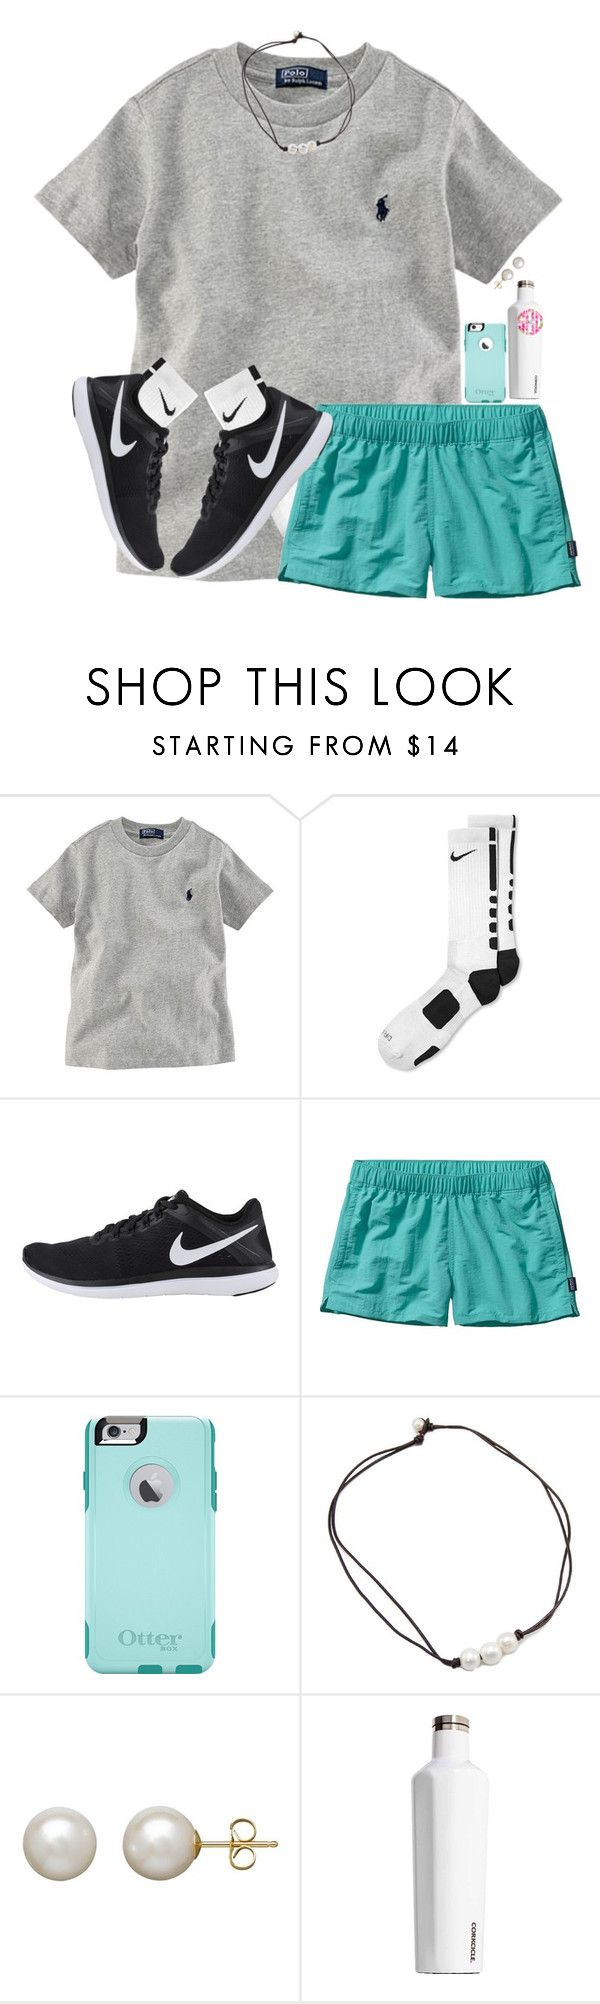 """I HATE THE NEW EMOJIS SO GLAD I DIDN'T UPDATE"" by evedriggers ❤ liked on Polyvore featuring Ralph Lauren, NIKE, Patagonia, OtterBox, Honora, Root7 and Lilly Pulitzer"